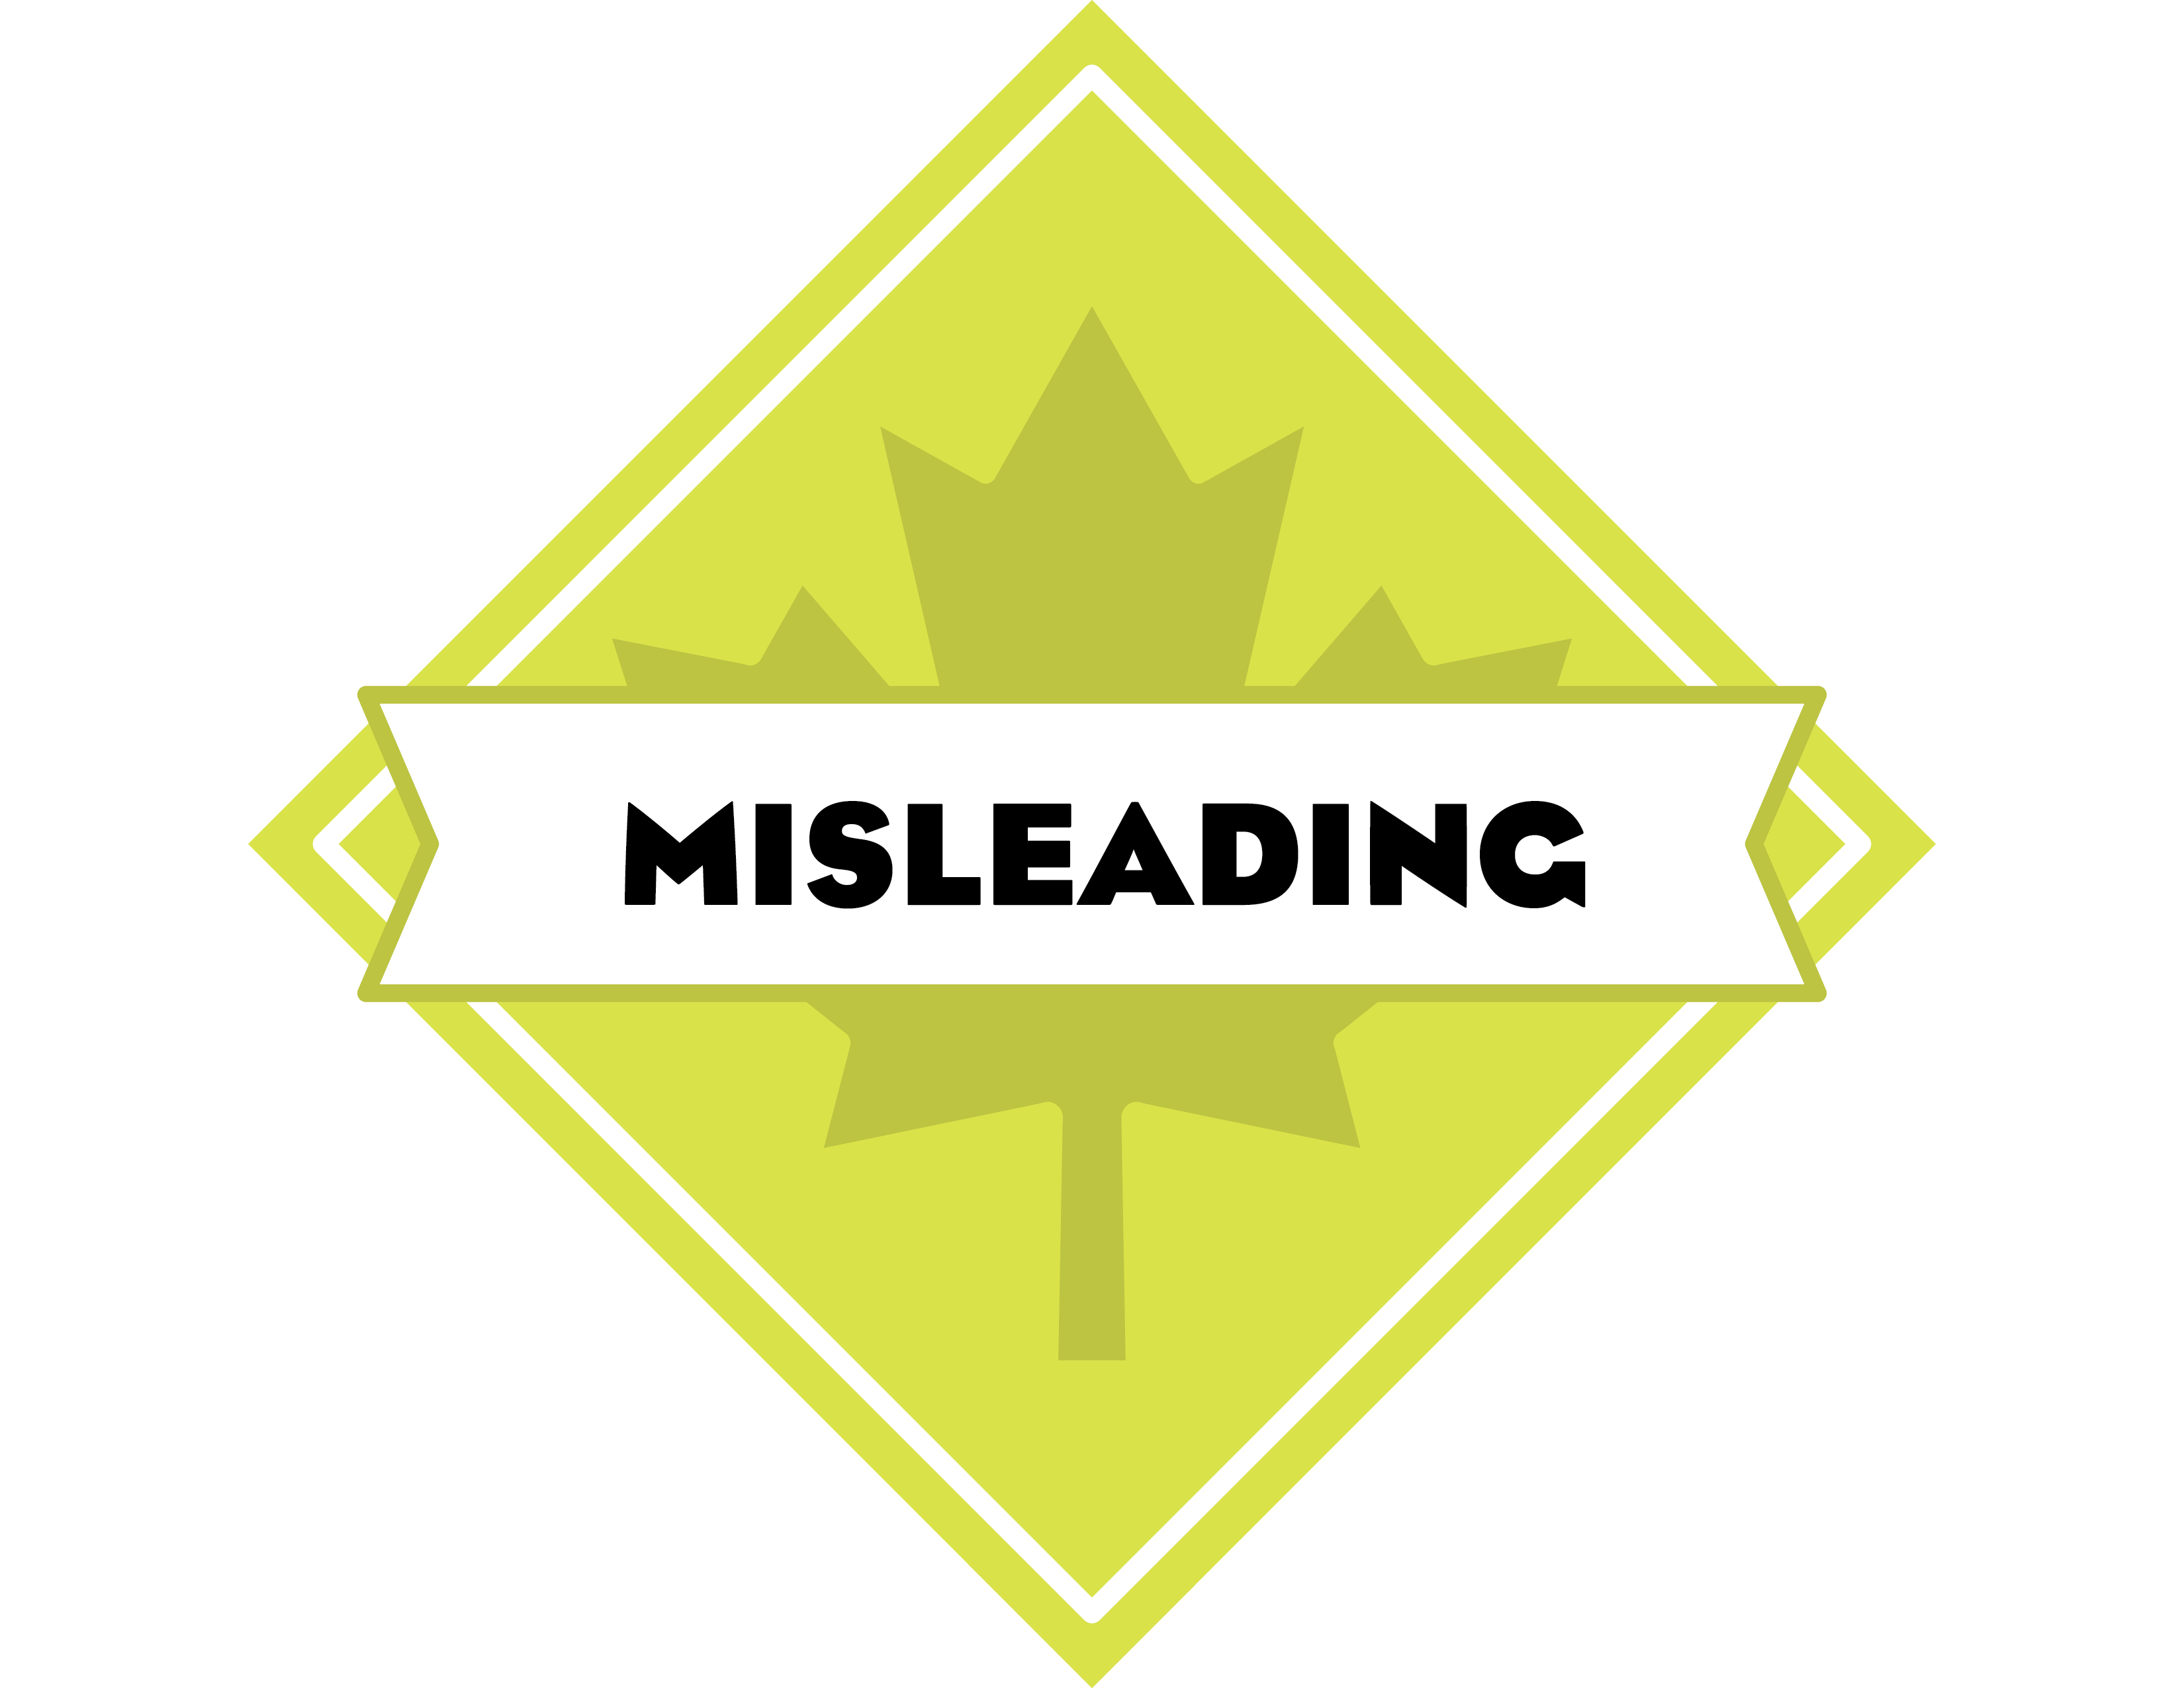 FactsCan Score: Misleading